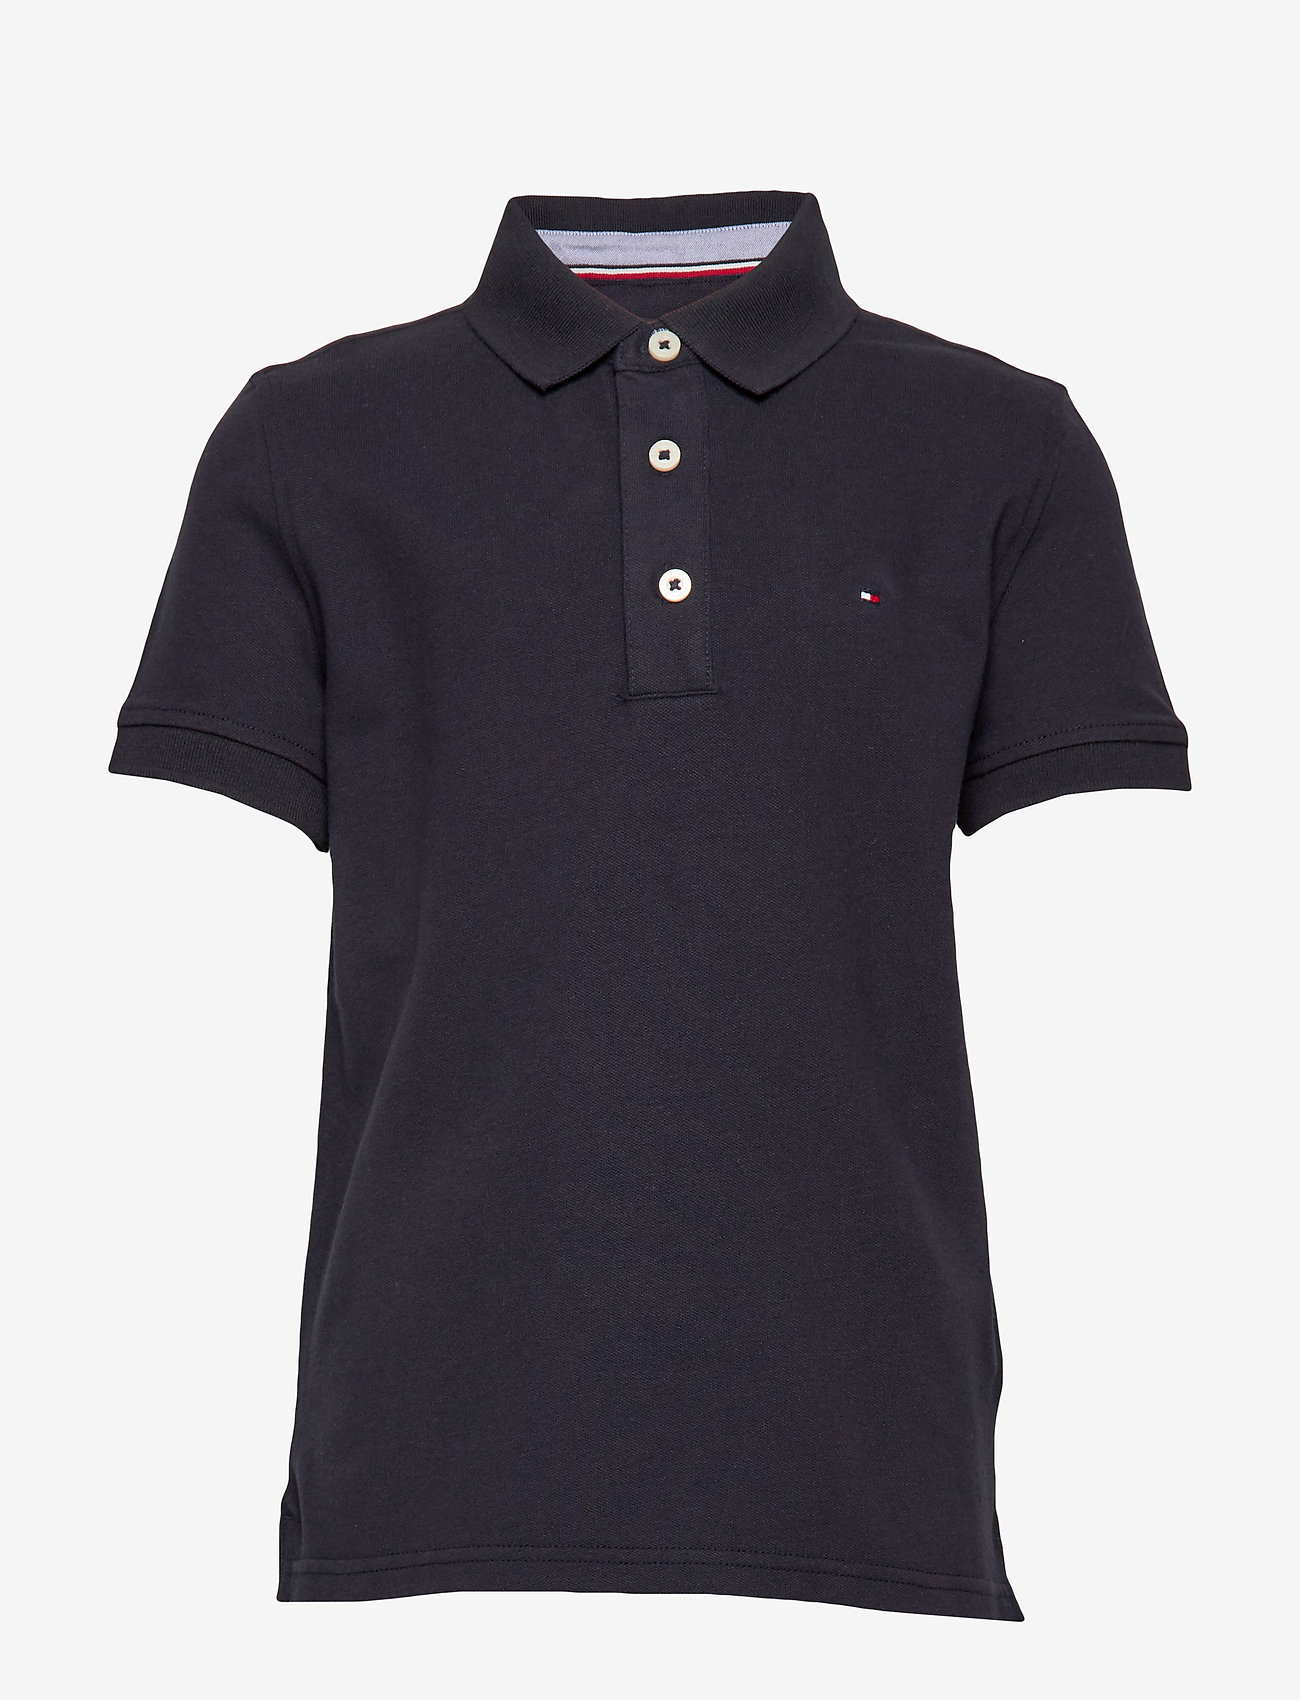 Tommy Hilfiger - BOYS TOMMY POLO S/S - polo shirts - sky captain - 0